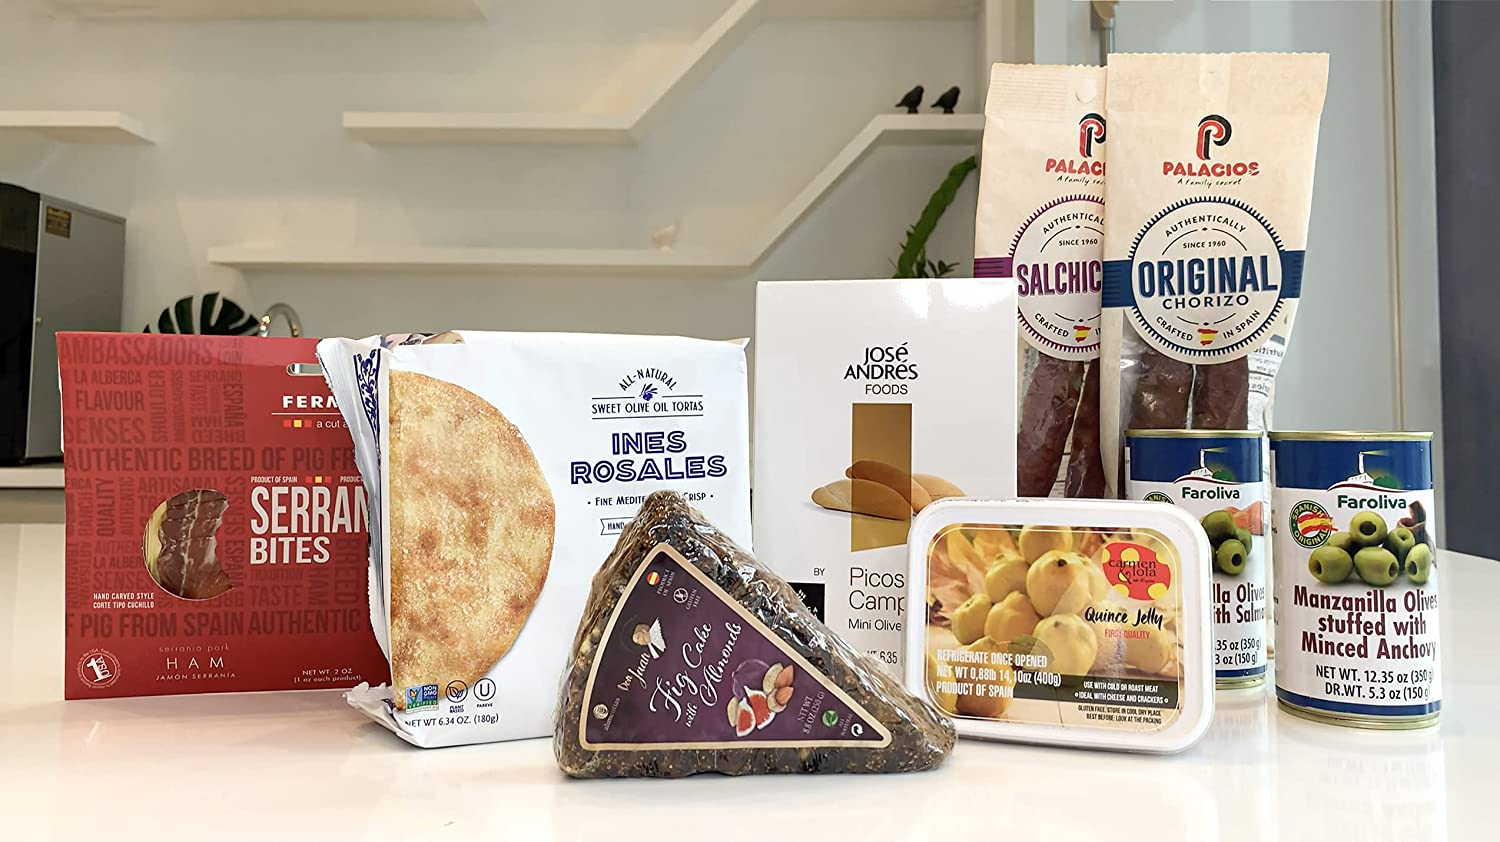 Spanish Fiesta Sampler Gourmet Selection Discount mail order - Gift S Box Today's only Includes